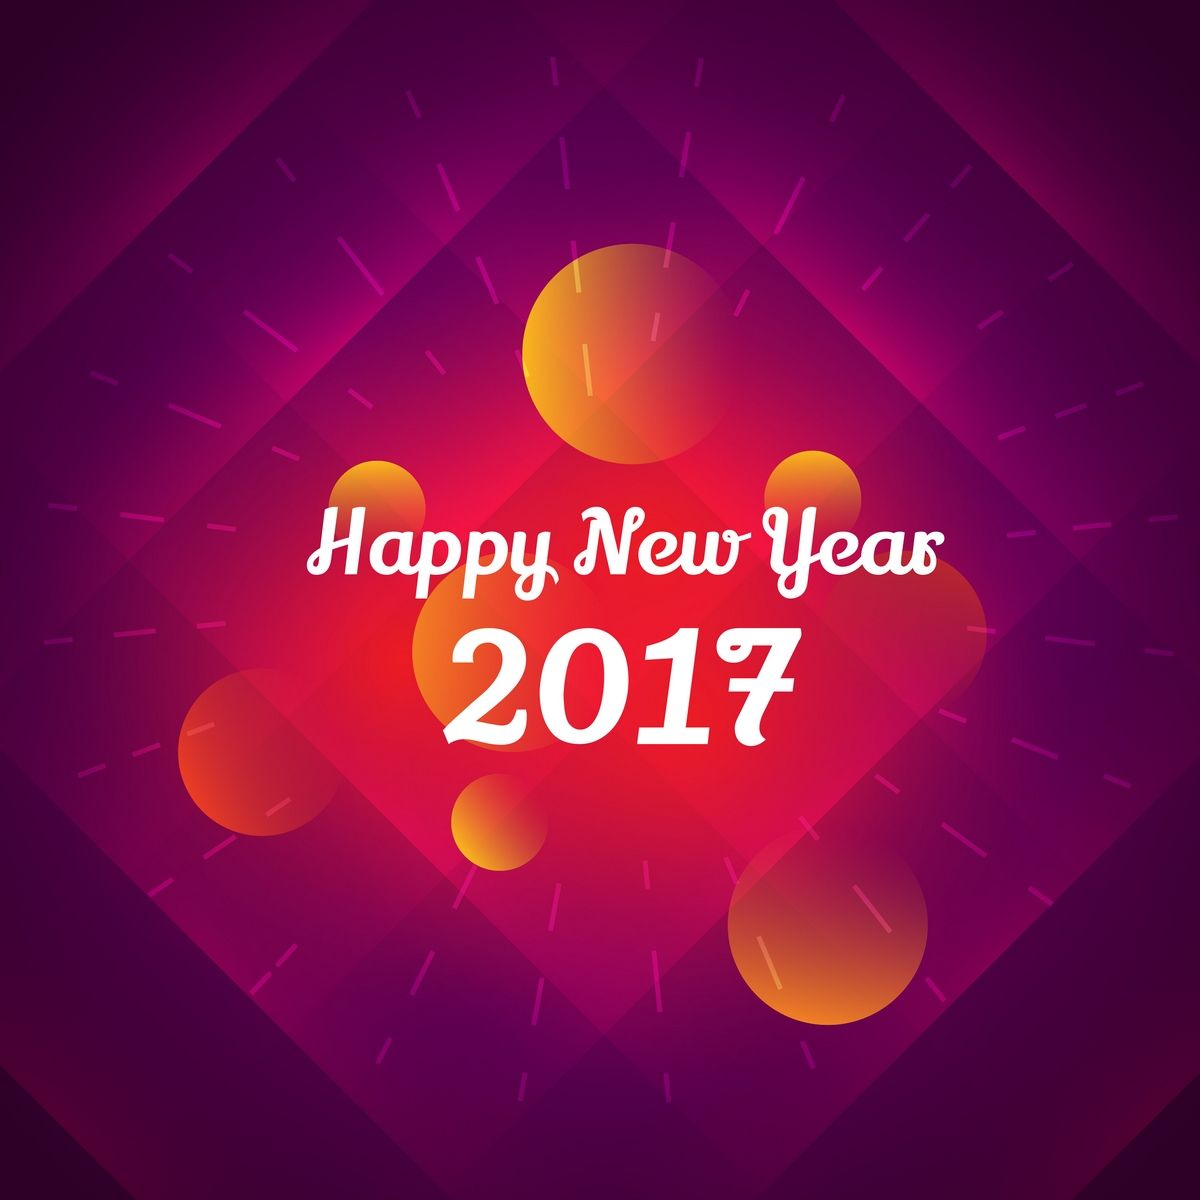 Fish aquarium quotes - Wishing You A Happy New Year 2017 Quotes Wishing You A Happy New Year Wishing You A Happy New Year 2017 Sayings